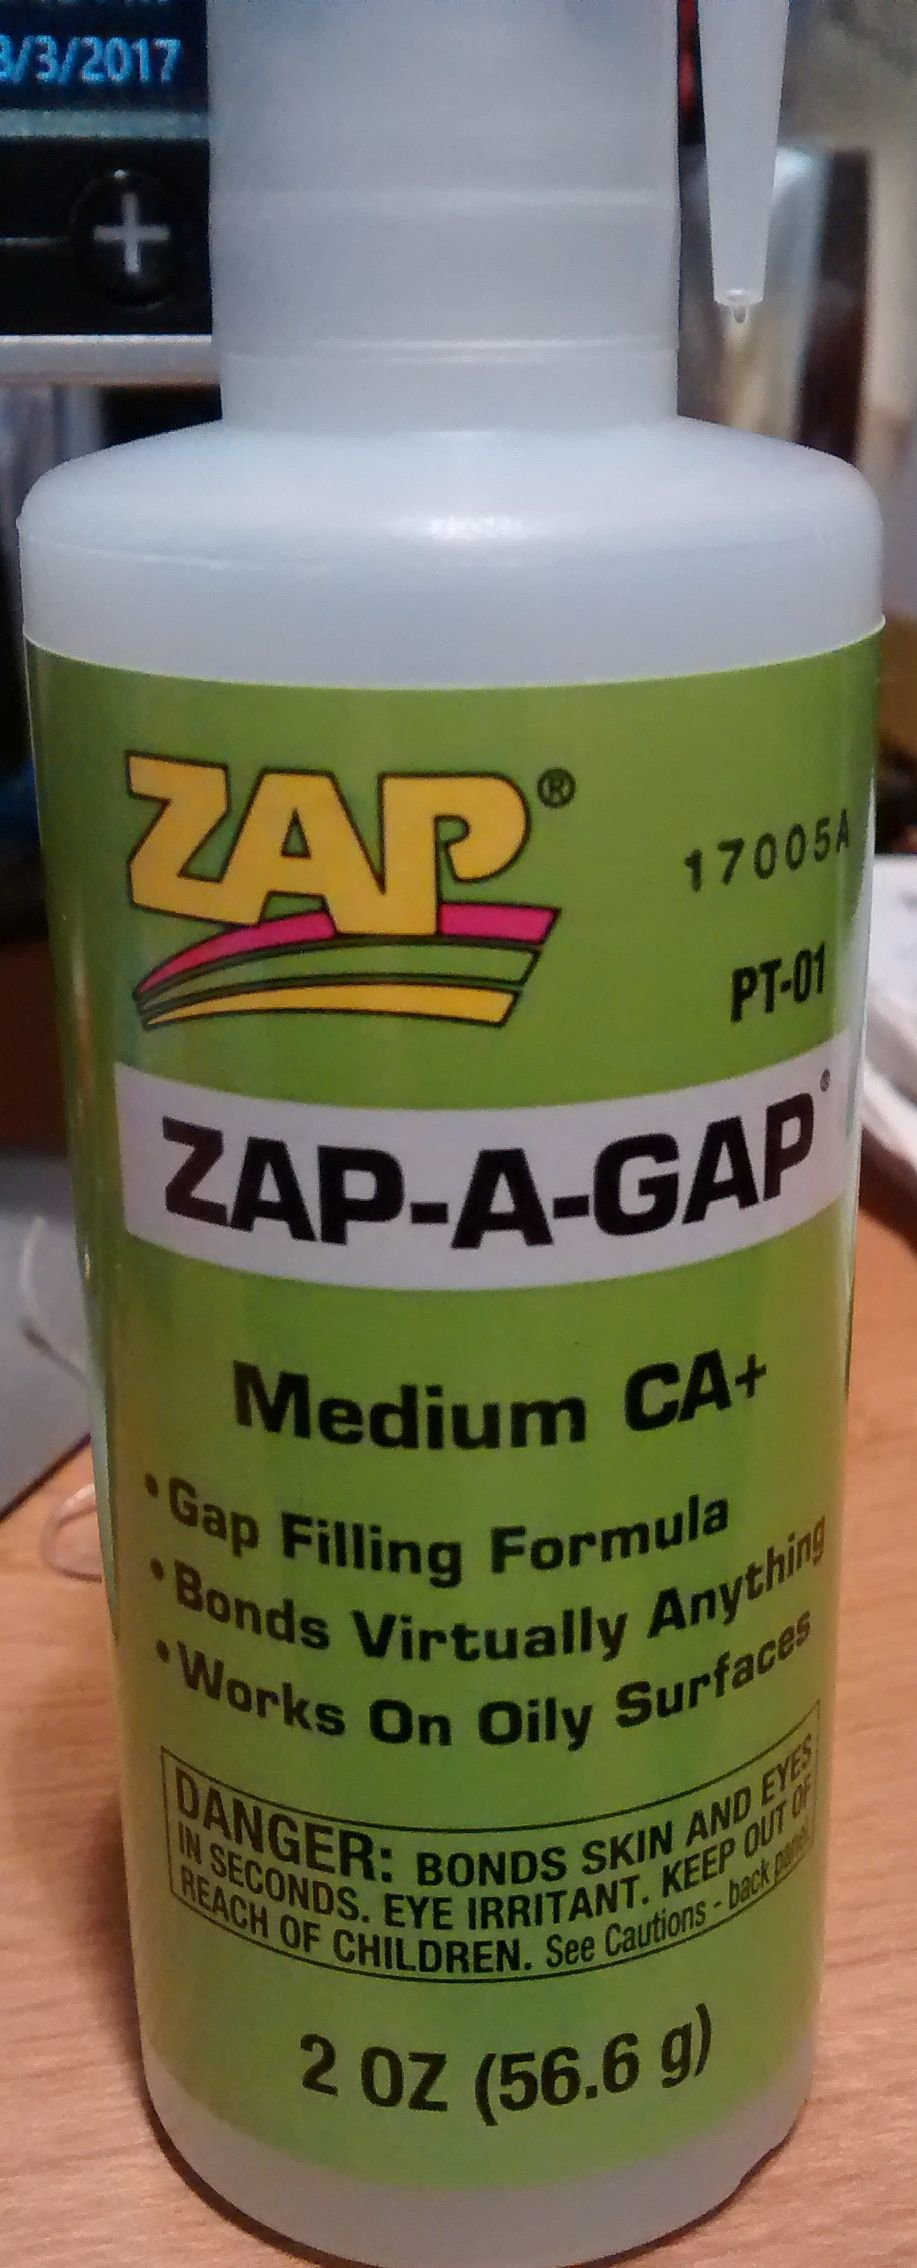 Zap-A-Gap Adhesive - Medium - 2 oz. G-6892